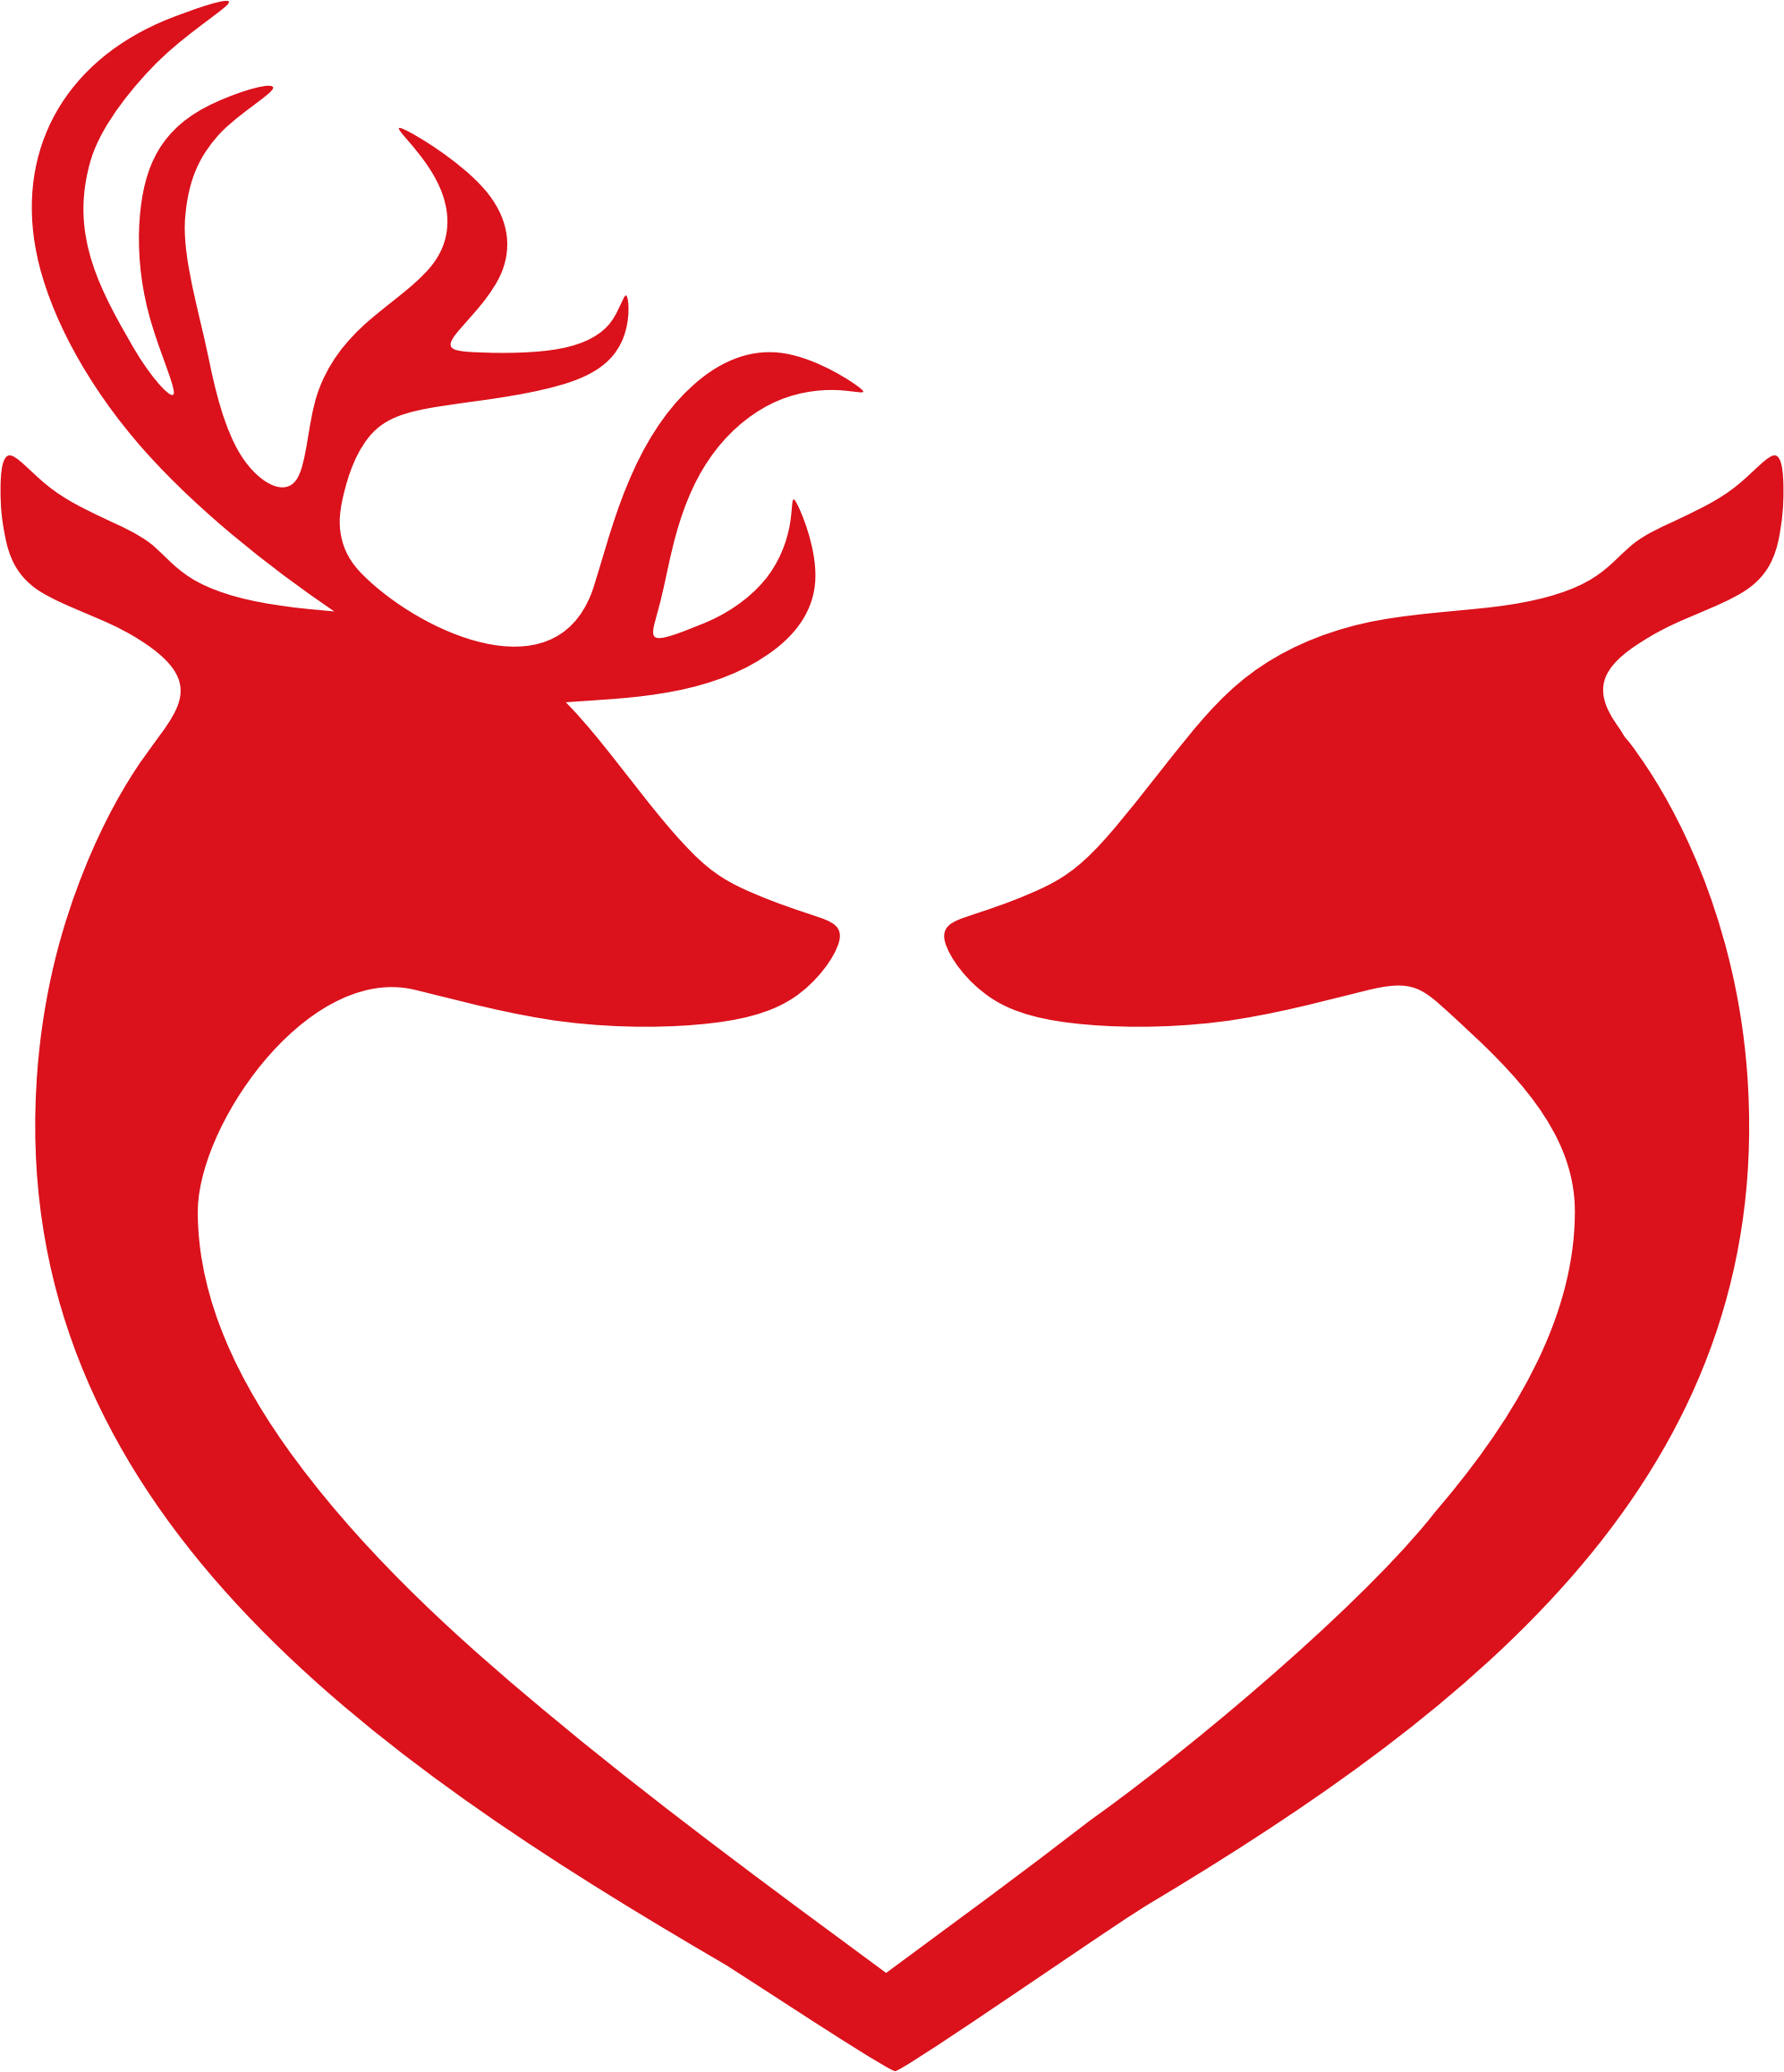 Deer heart silhouette by. Hunting clipart couple